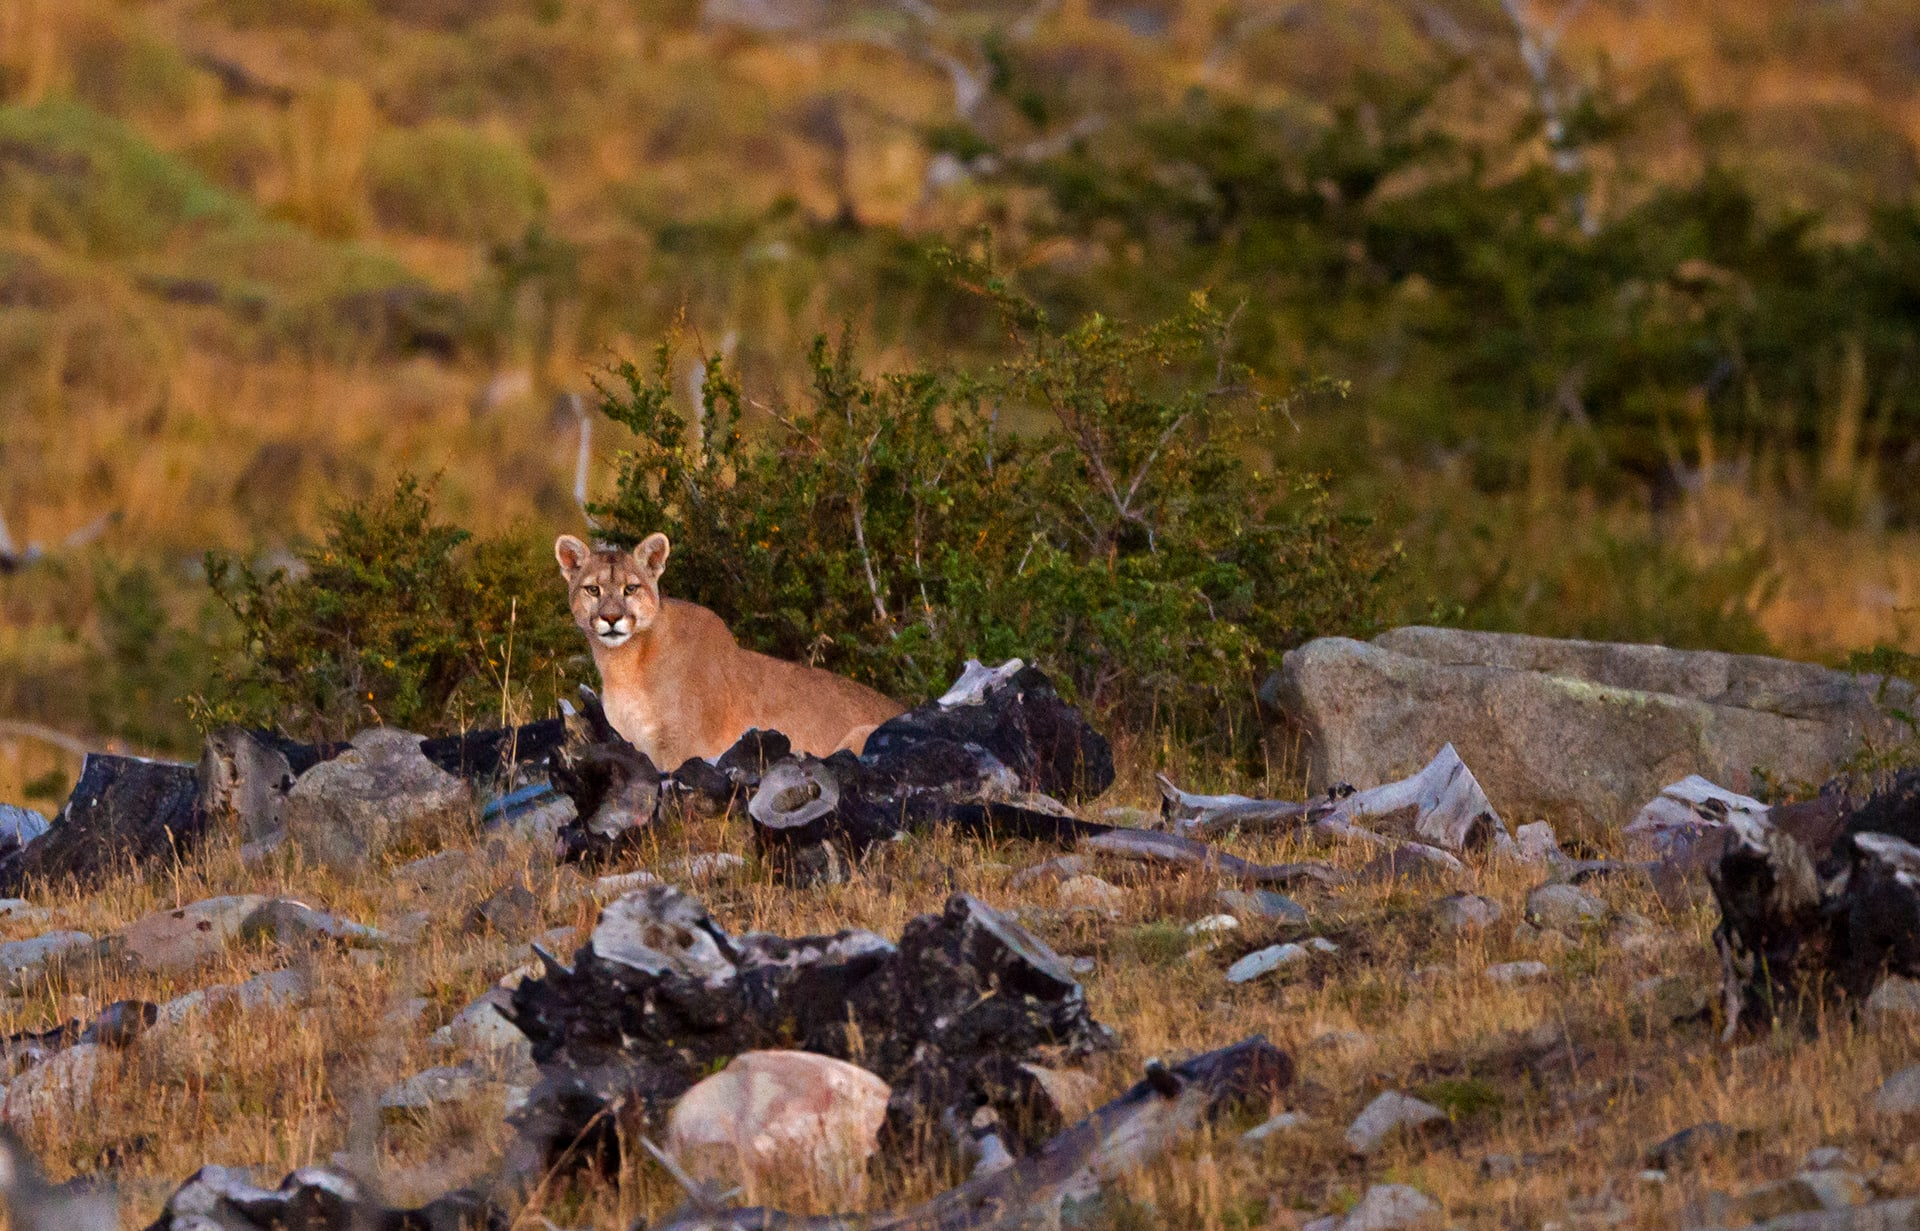 Solitary hunters, the pumas of Torres del Paine are among the largest seen in South America. This particular puma was big, probably a male, and very shy. We'd spotted its kill the previous night and came back in the morning to see if we could track it.